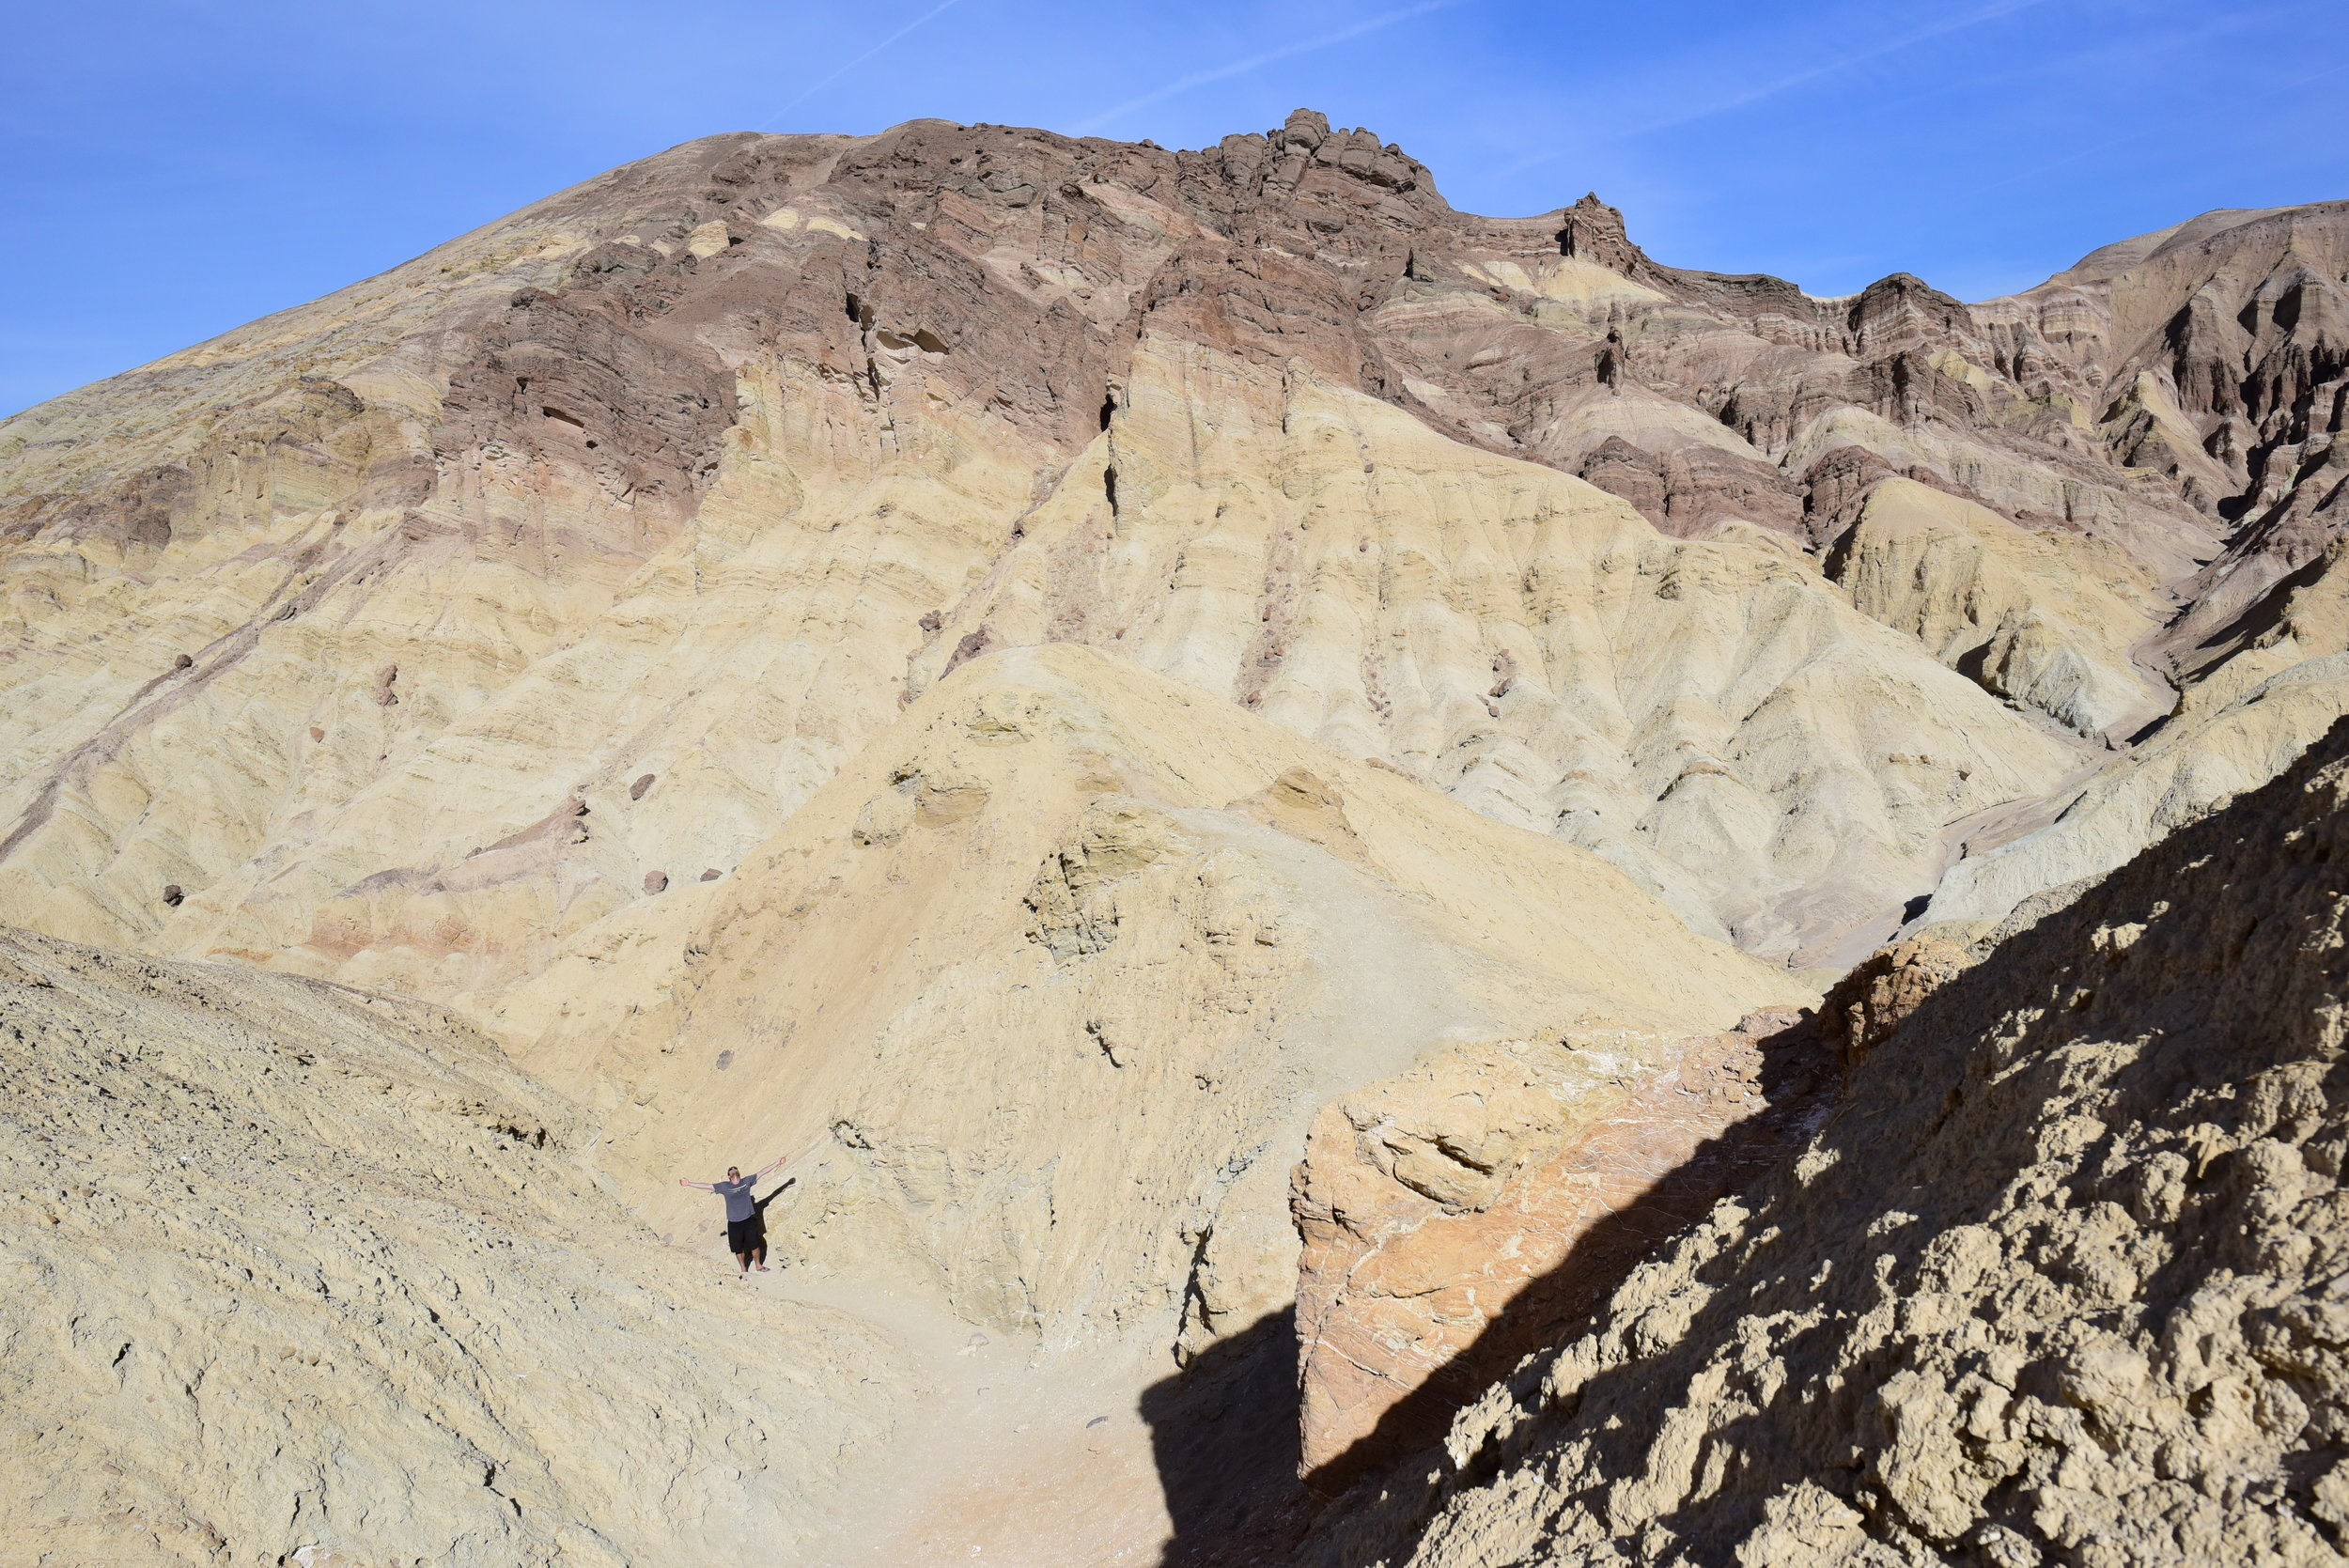 Hiking through Golden Canyon in Death Valley